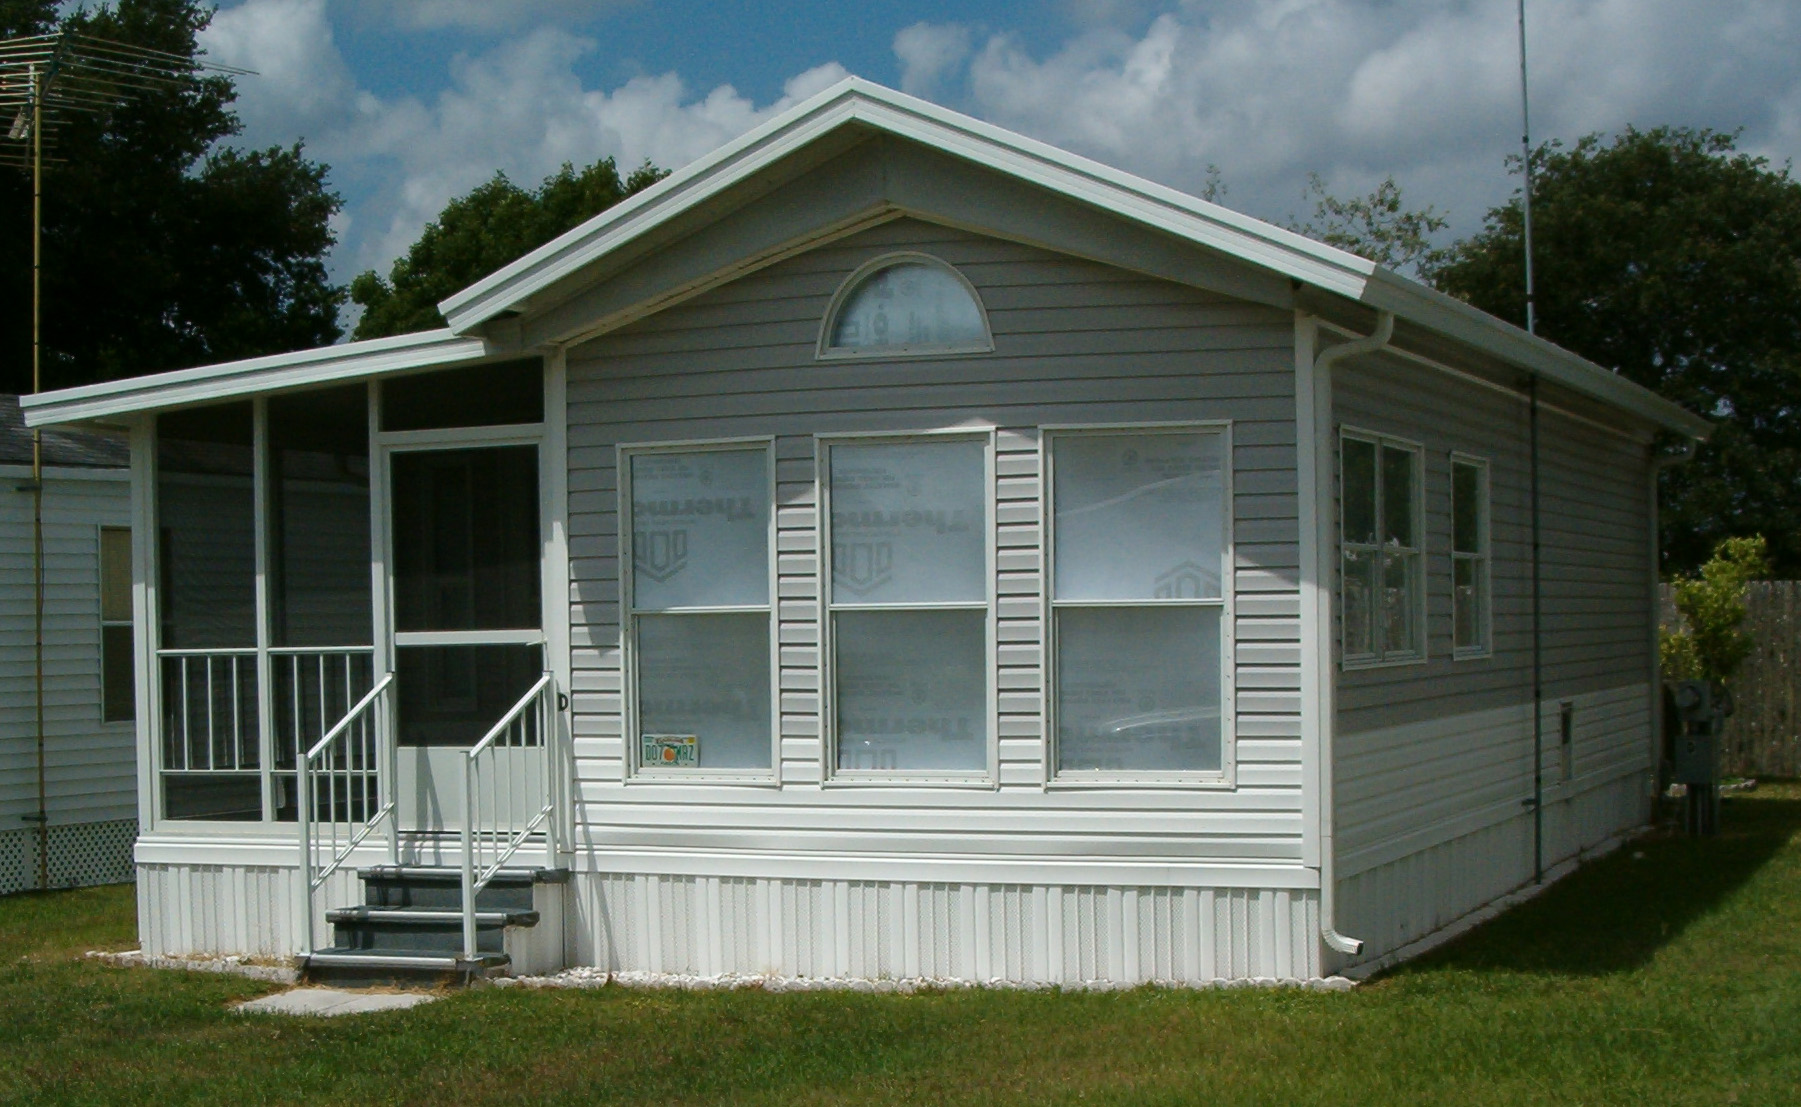 Mobile Homes for Sale and Rent to Own Mobiles Ft Myers and ...